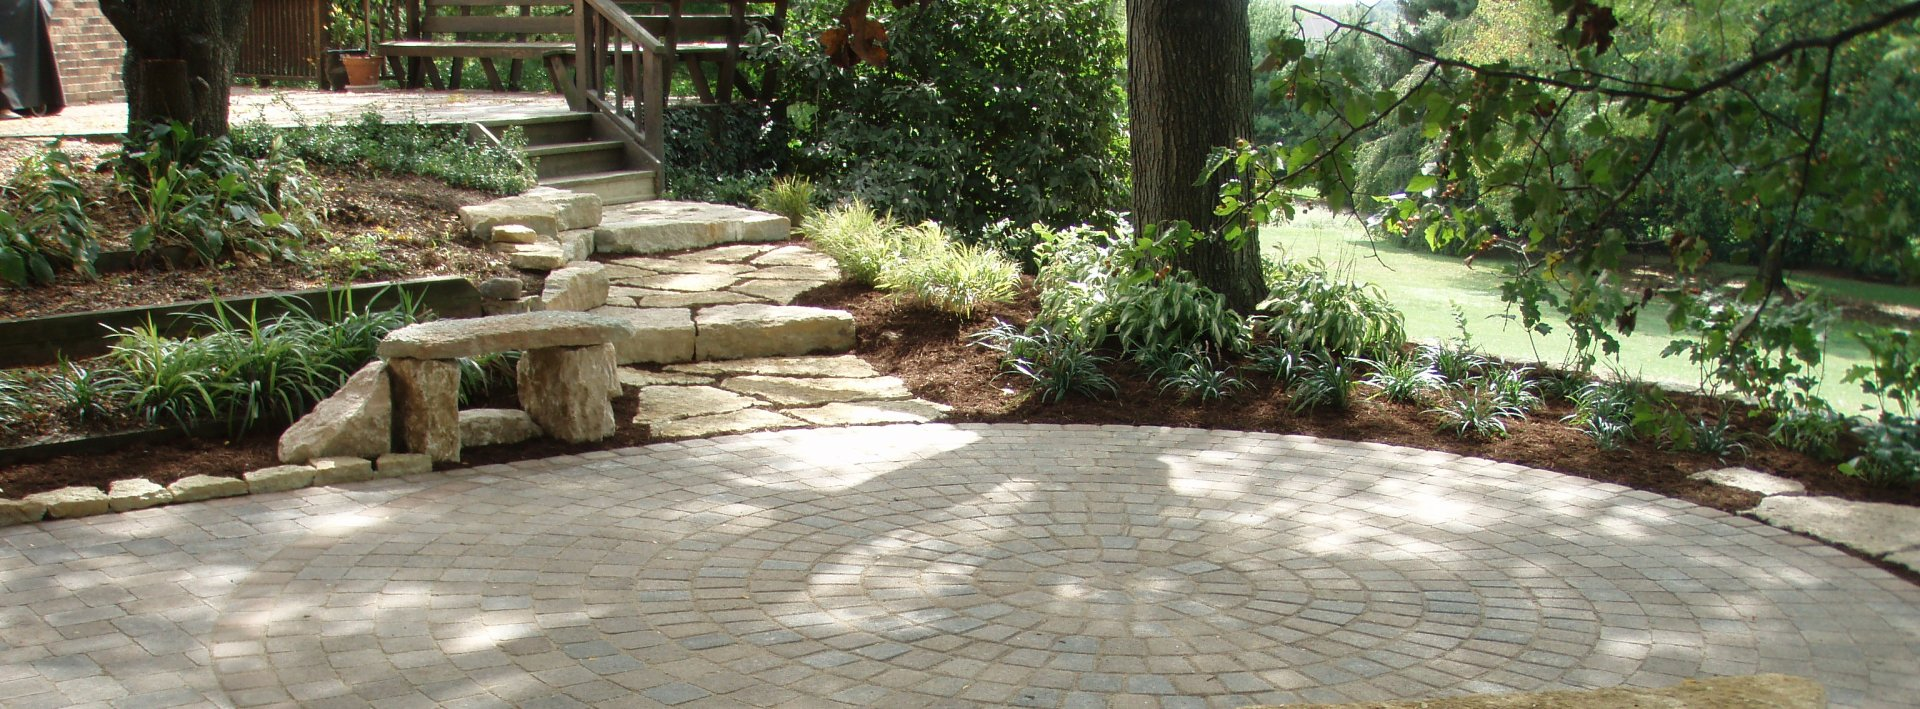 Paver deck and woods